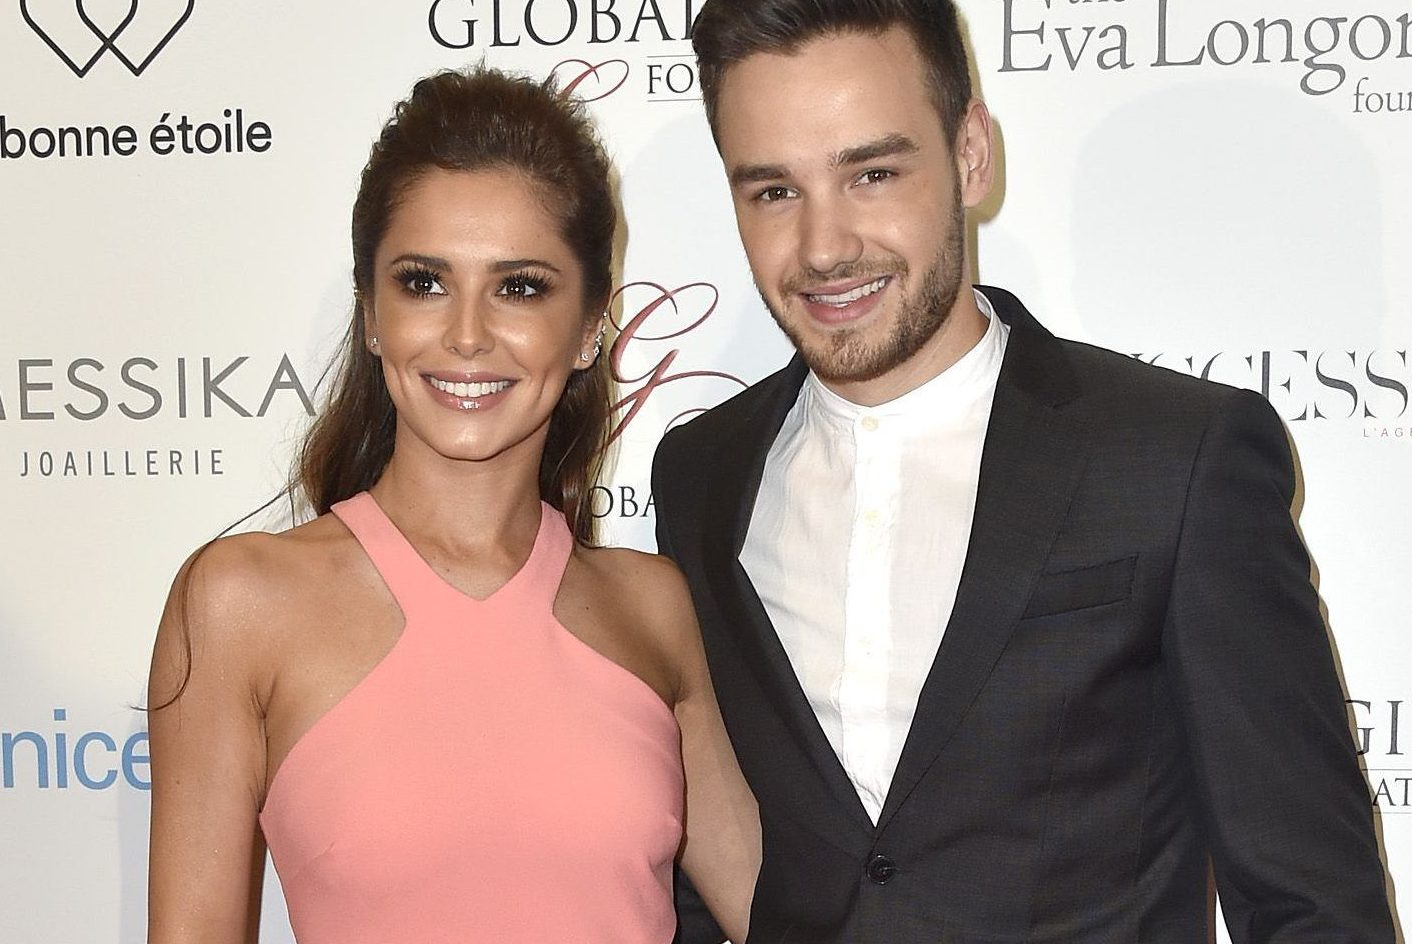 Liam Payne praises Cheryl for 'putting her heart into such a great cause' amid split rumours